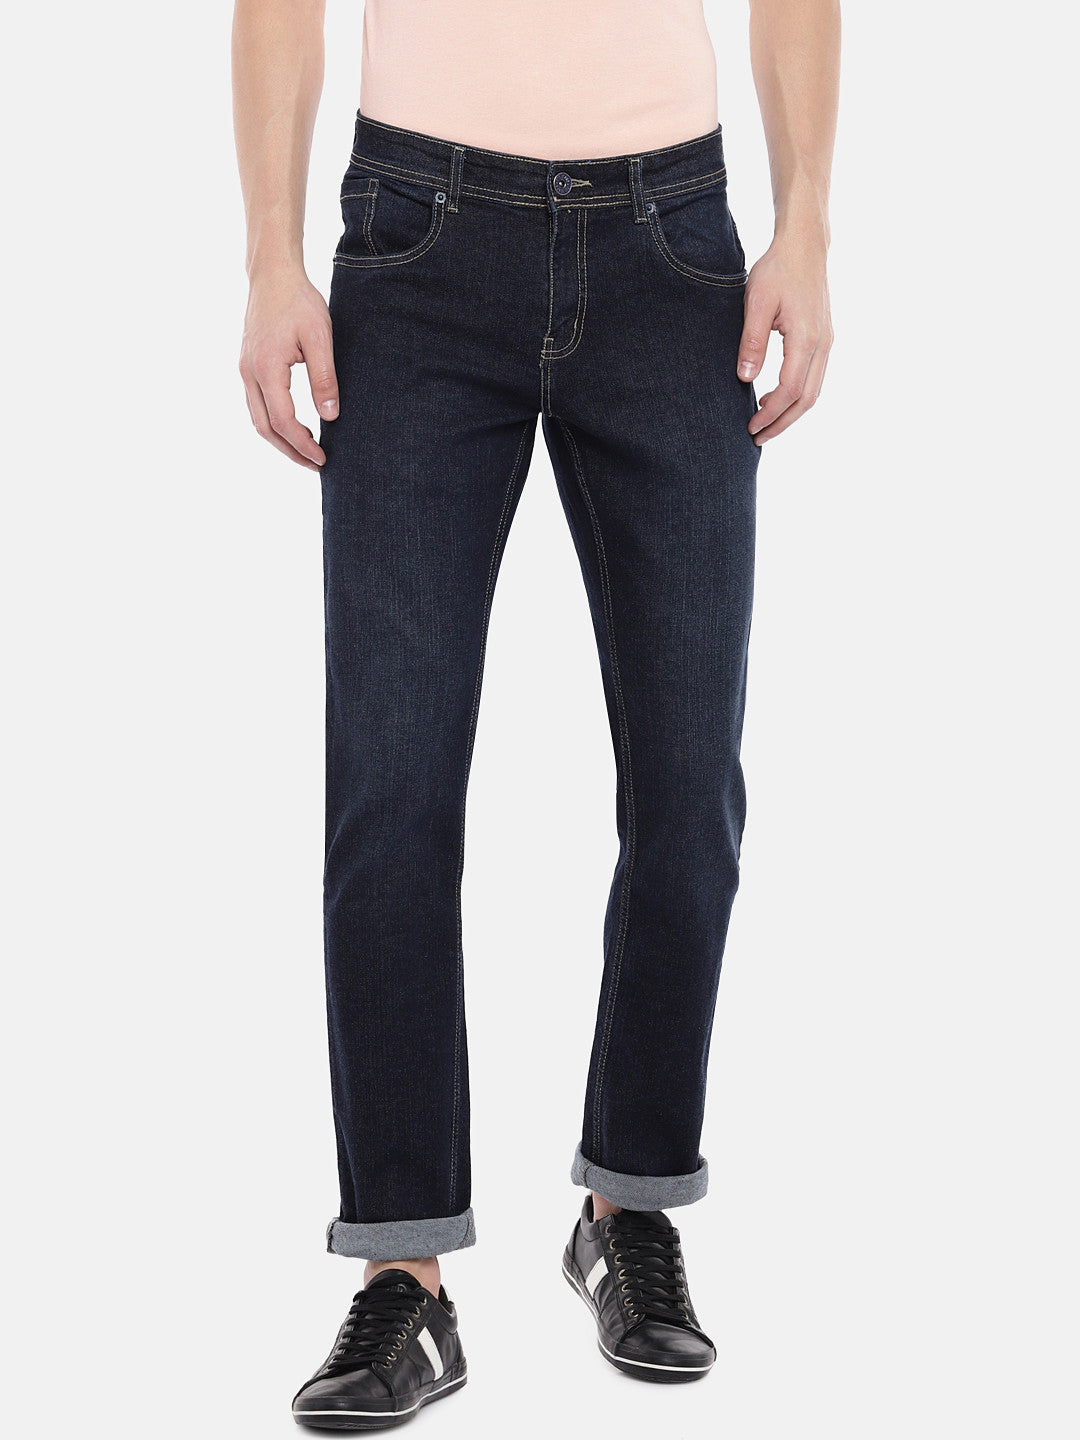 Navy Blue Slim Fit Mid-Rise Clean Look Jeans-1